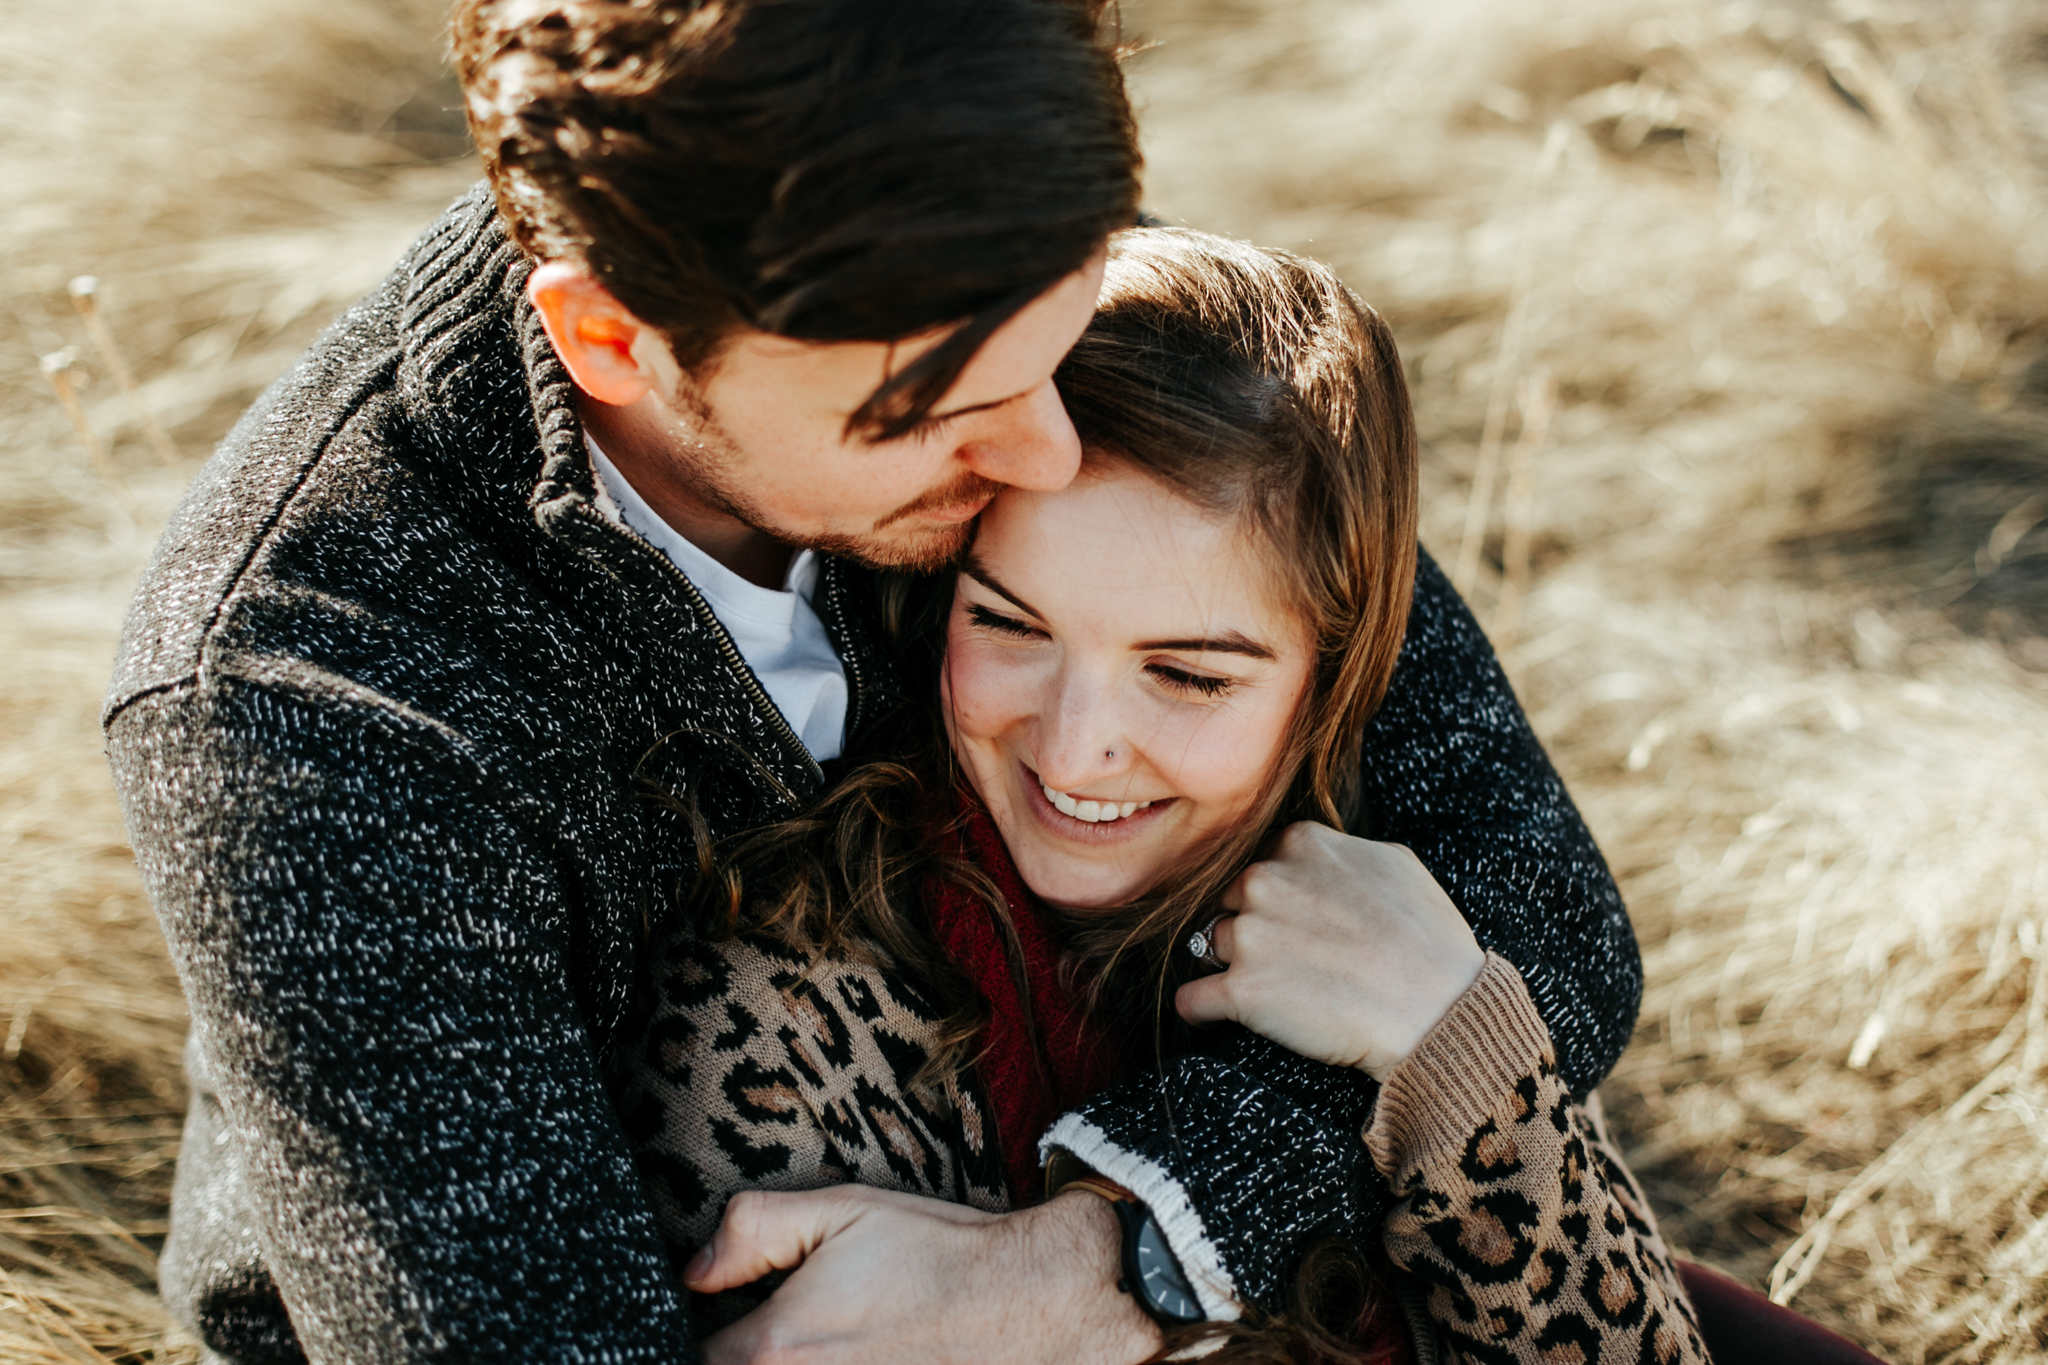 lethbridge-photographer-love-and-be-loved-photography-winter-engagement-emma-tanner-picture-image-photo-22.jpg